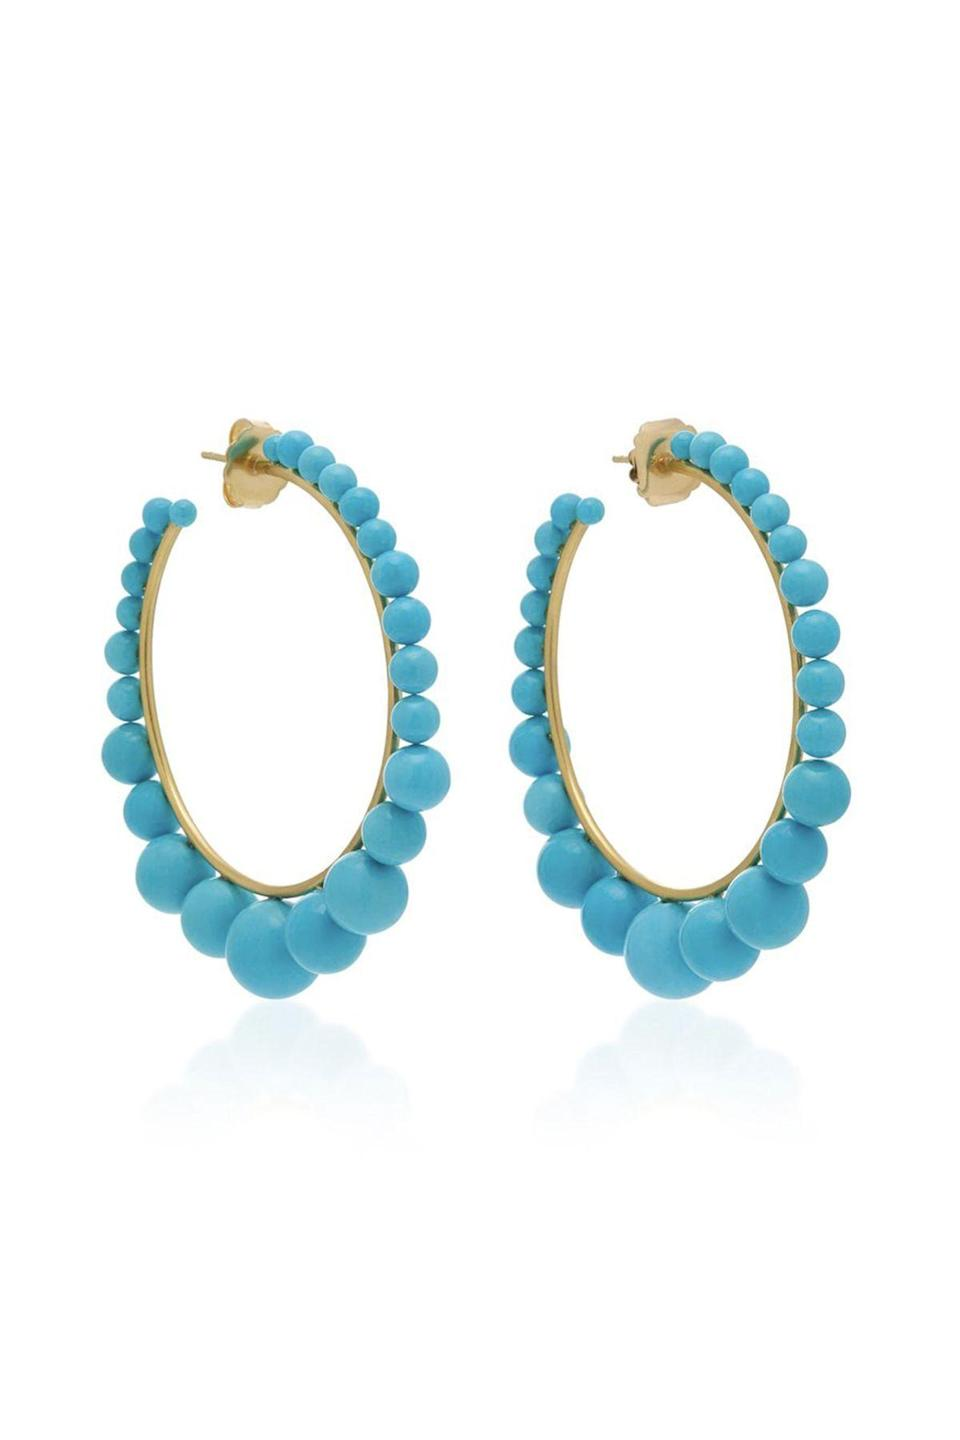 """<p><strong>Irene Neuwirth</strong></p><p>modaoperandi.com</p><p><strong>$10650.00</strong></p><p><a href=""""https://go.redirectingat.com?id=74968X1596630&url=https%3A%2F%2Fwww.modaoperandi.com%2Firene-neuwirth-fw19%2F18k-gold-and-turquoise-hoop-earrings-3&sref=https%3A%2F%2Fwww.townandcountrymag.com%2Fstyle%2Fjewelry-and-watches%2Fg33469392%2Fthe-weekly-covet-july-31-2020%2F"""" rel=""""nofollow noopener"""" target=""""_blank"""" data-ylk=""""slk:Shop Now"""" class=""""link rapid-noclick-resp"""">Shop Now</a></p><p>These hoops by Irene Neuwirth are the perfect pop of color for the summertime. </p>"""